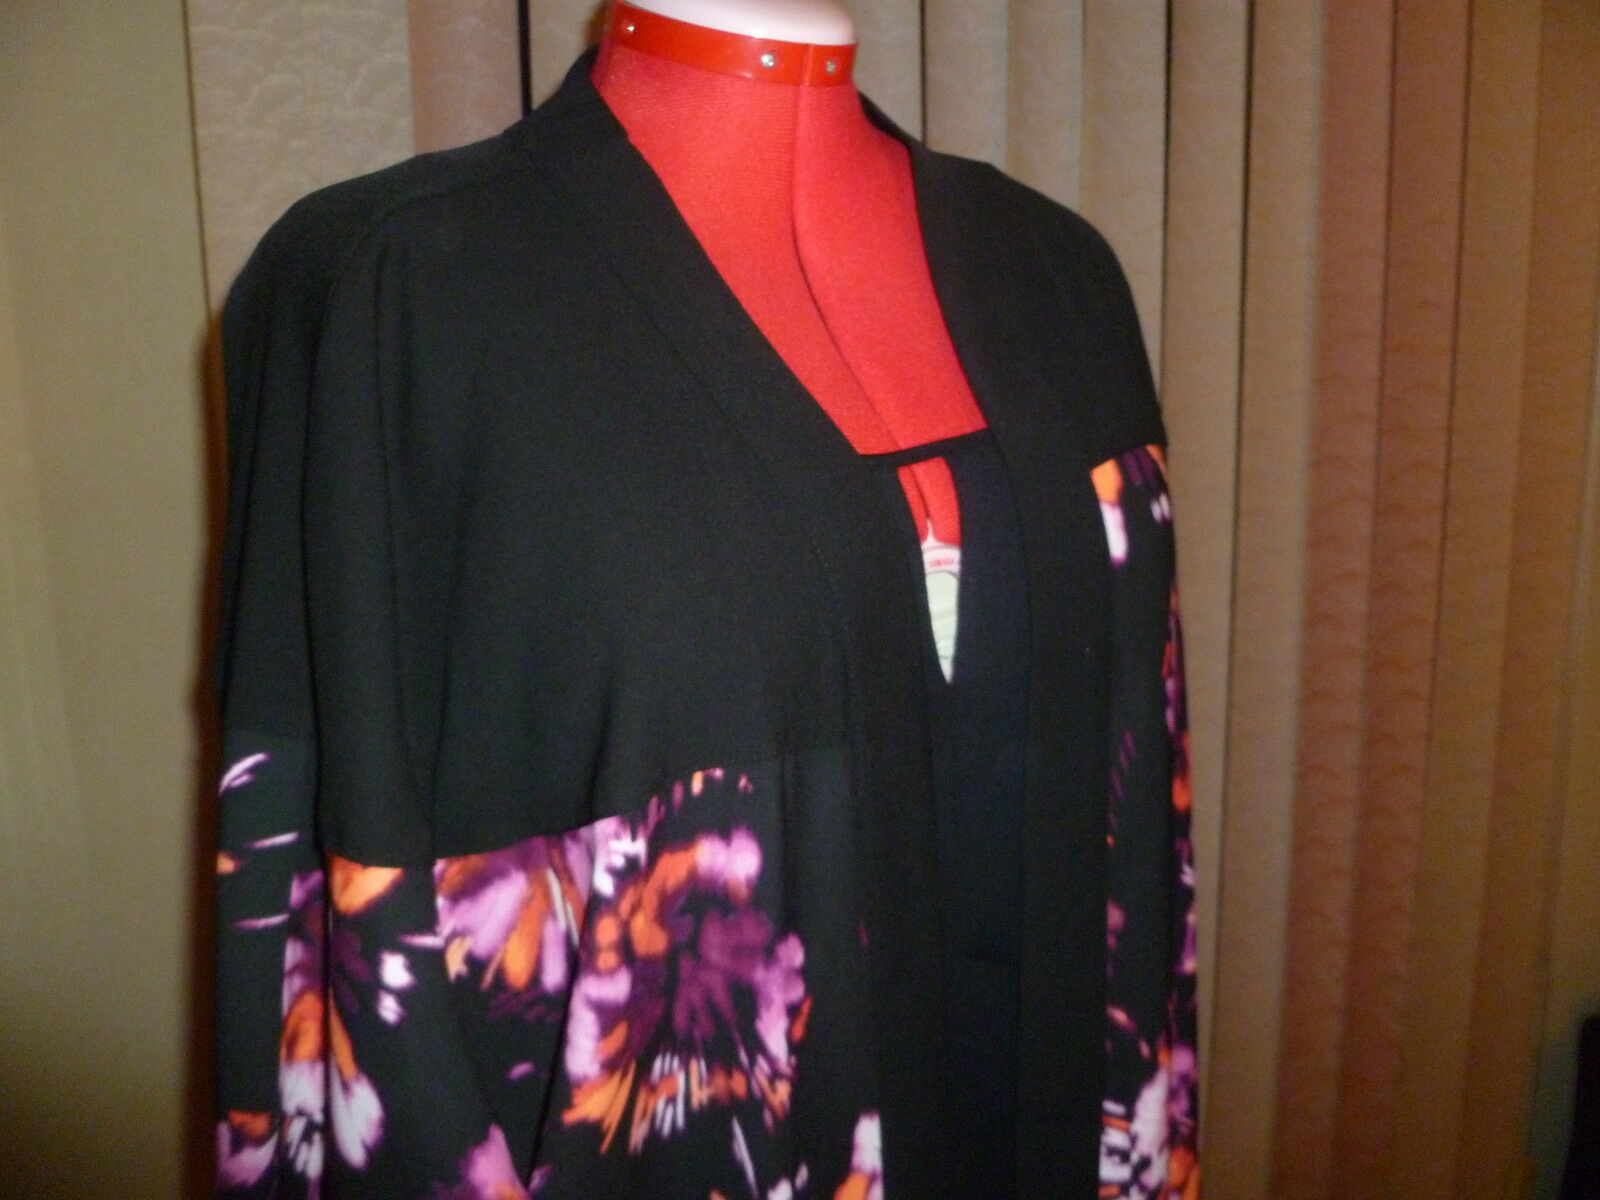 NWOT SEJOUR long wide sleeves open front duster in schwarz+floral prints Größe 2X.